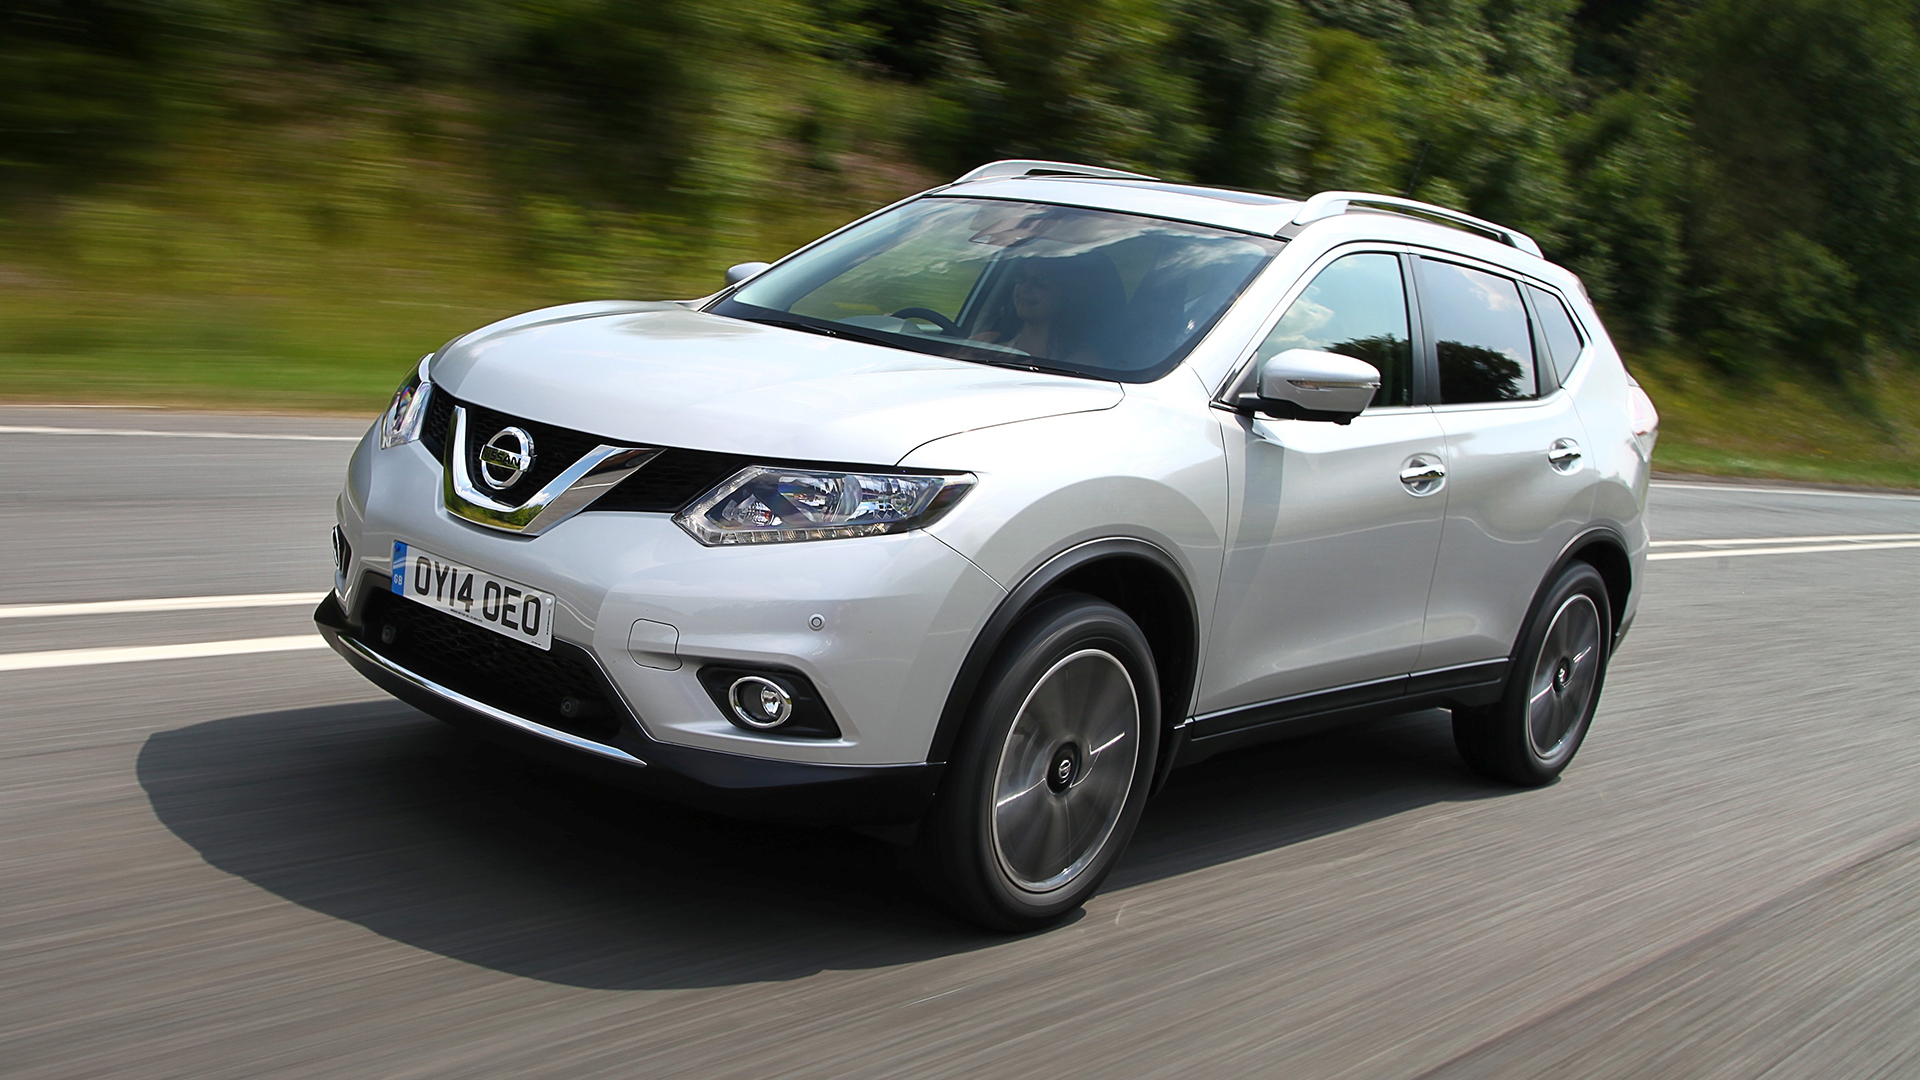 find used nissan x trail cars for sale on auto trader uk. Black Bedroom Furniture Sets. Home Design Ideas